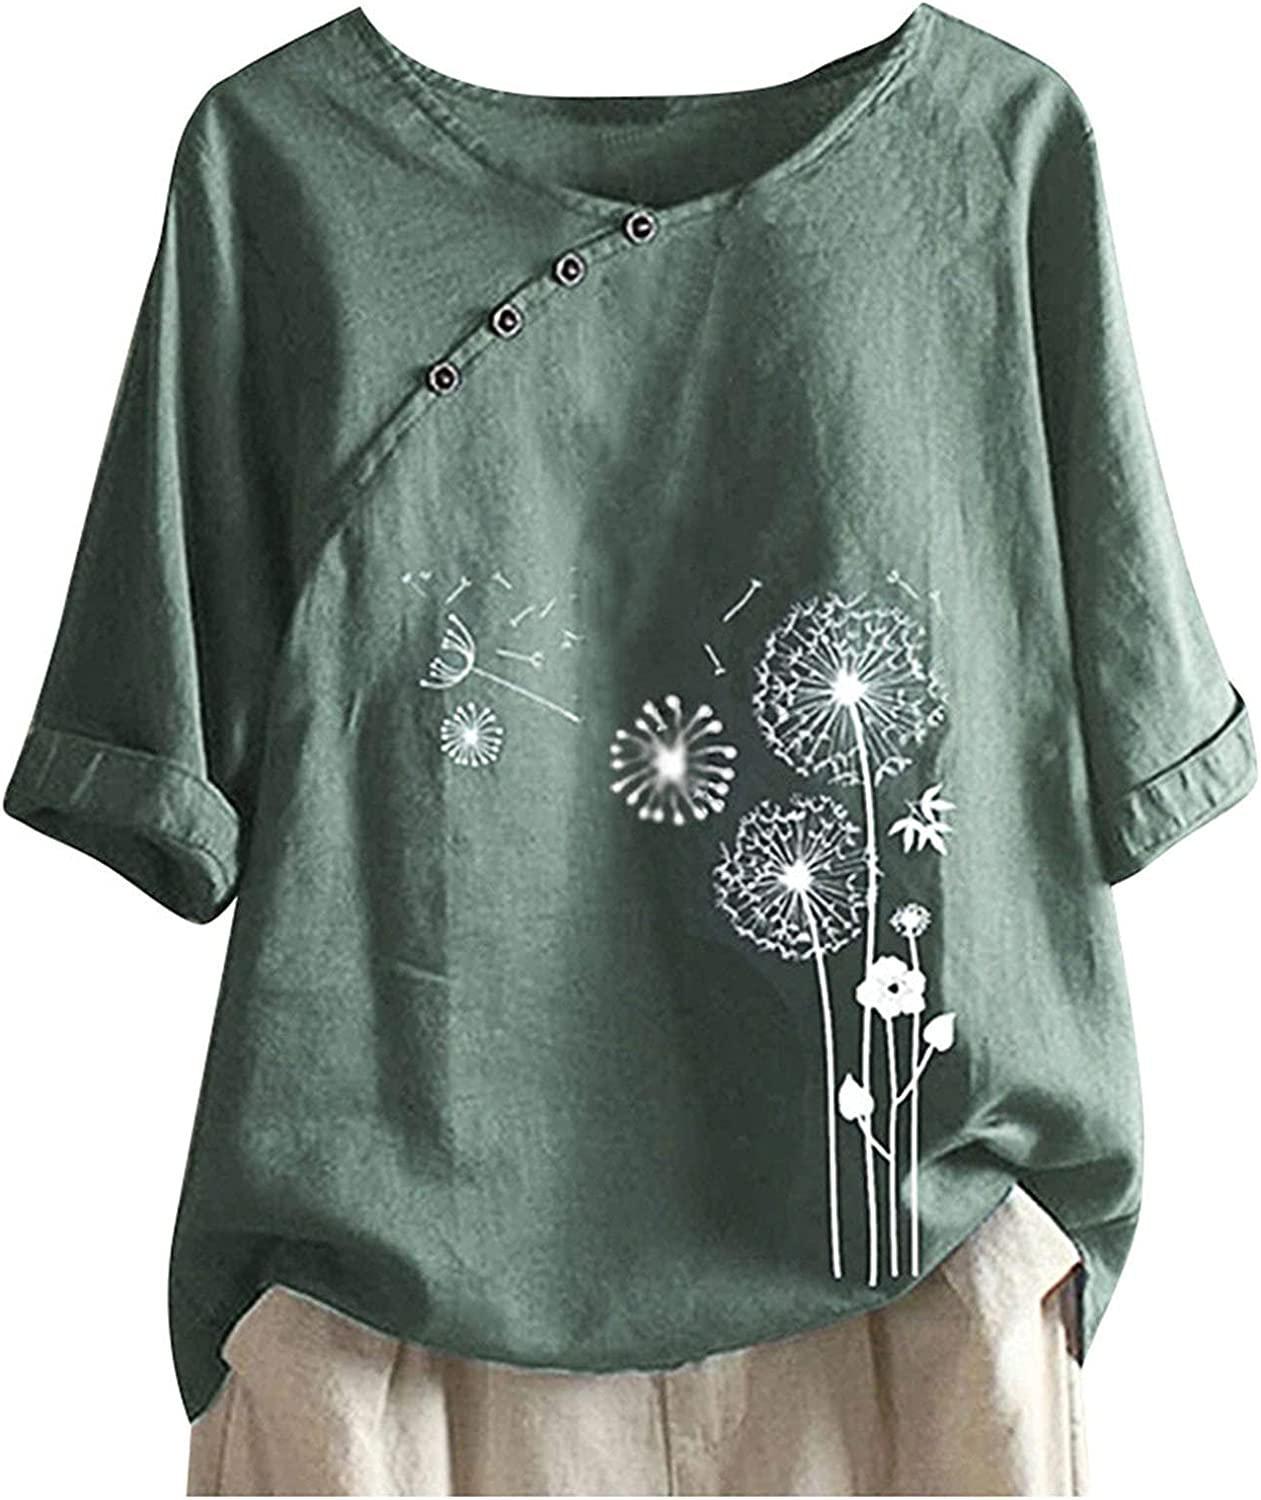 Women Max 61% OFF Blouses and Tops Fashion for Tee Casual Free Shipping New Work Butto Printed